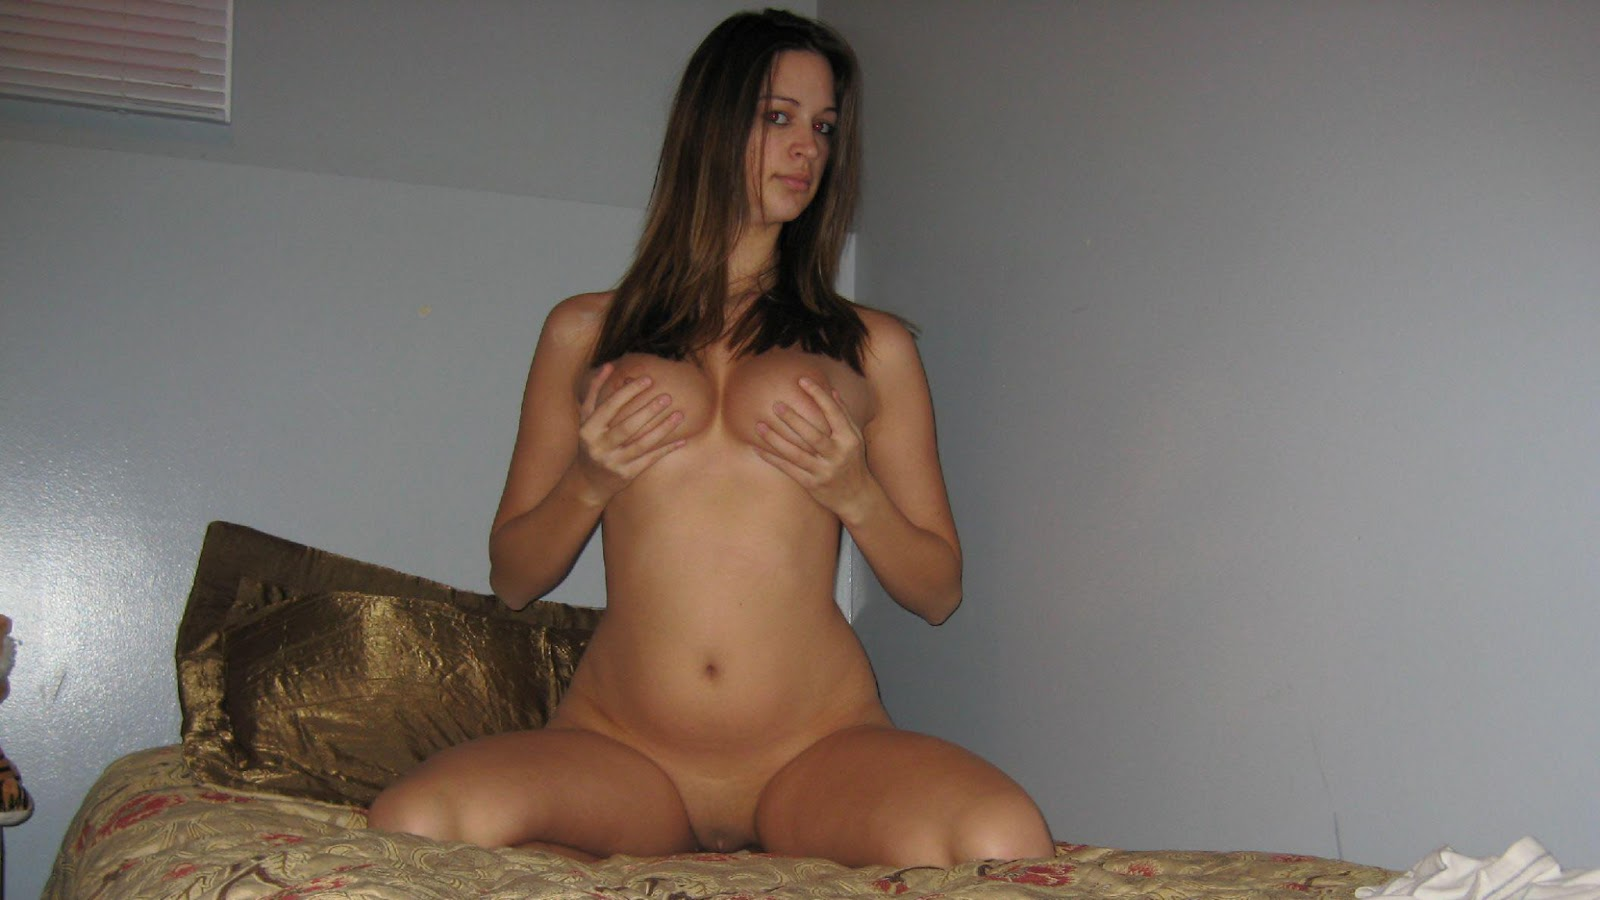 Marie marcos nude pics